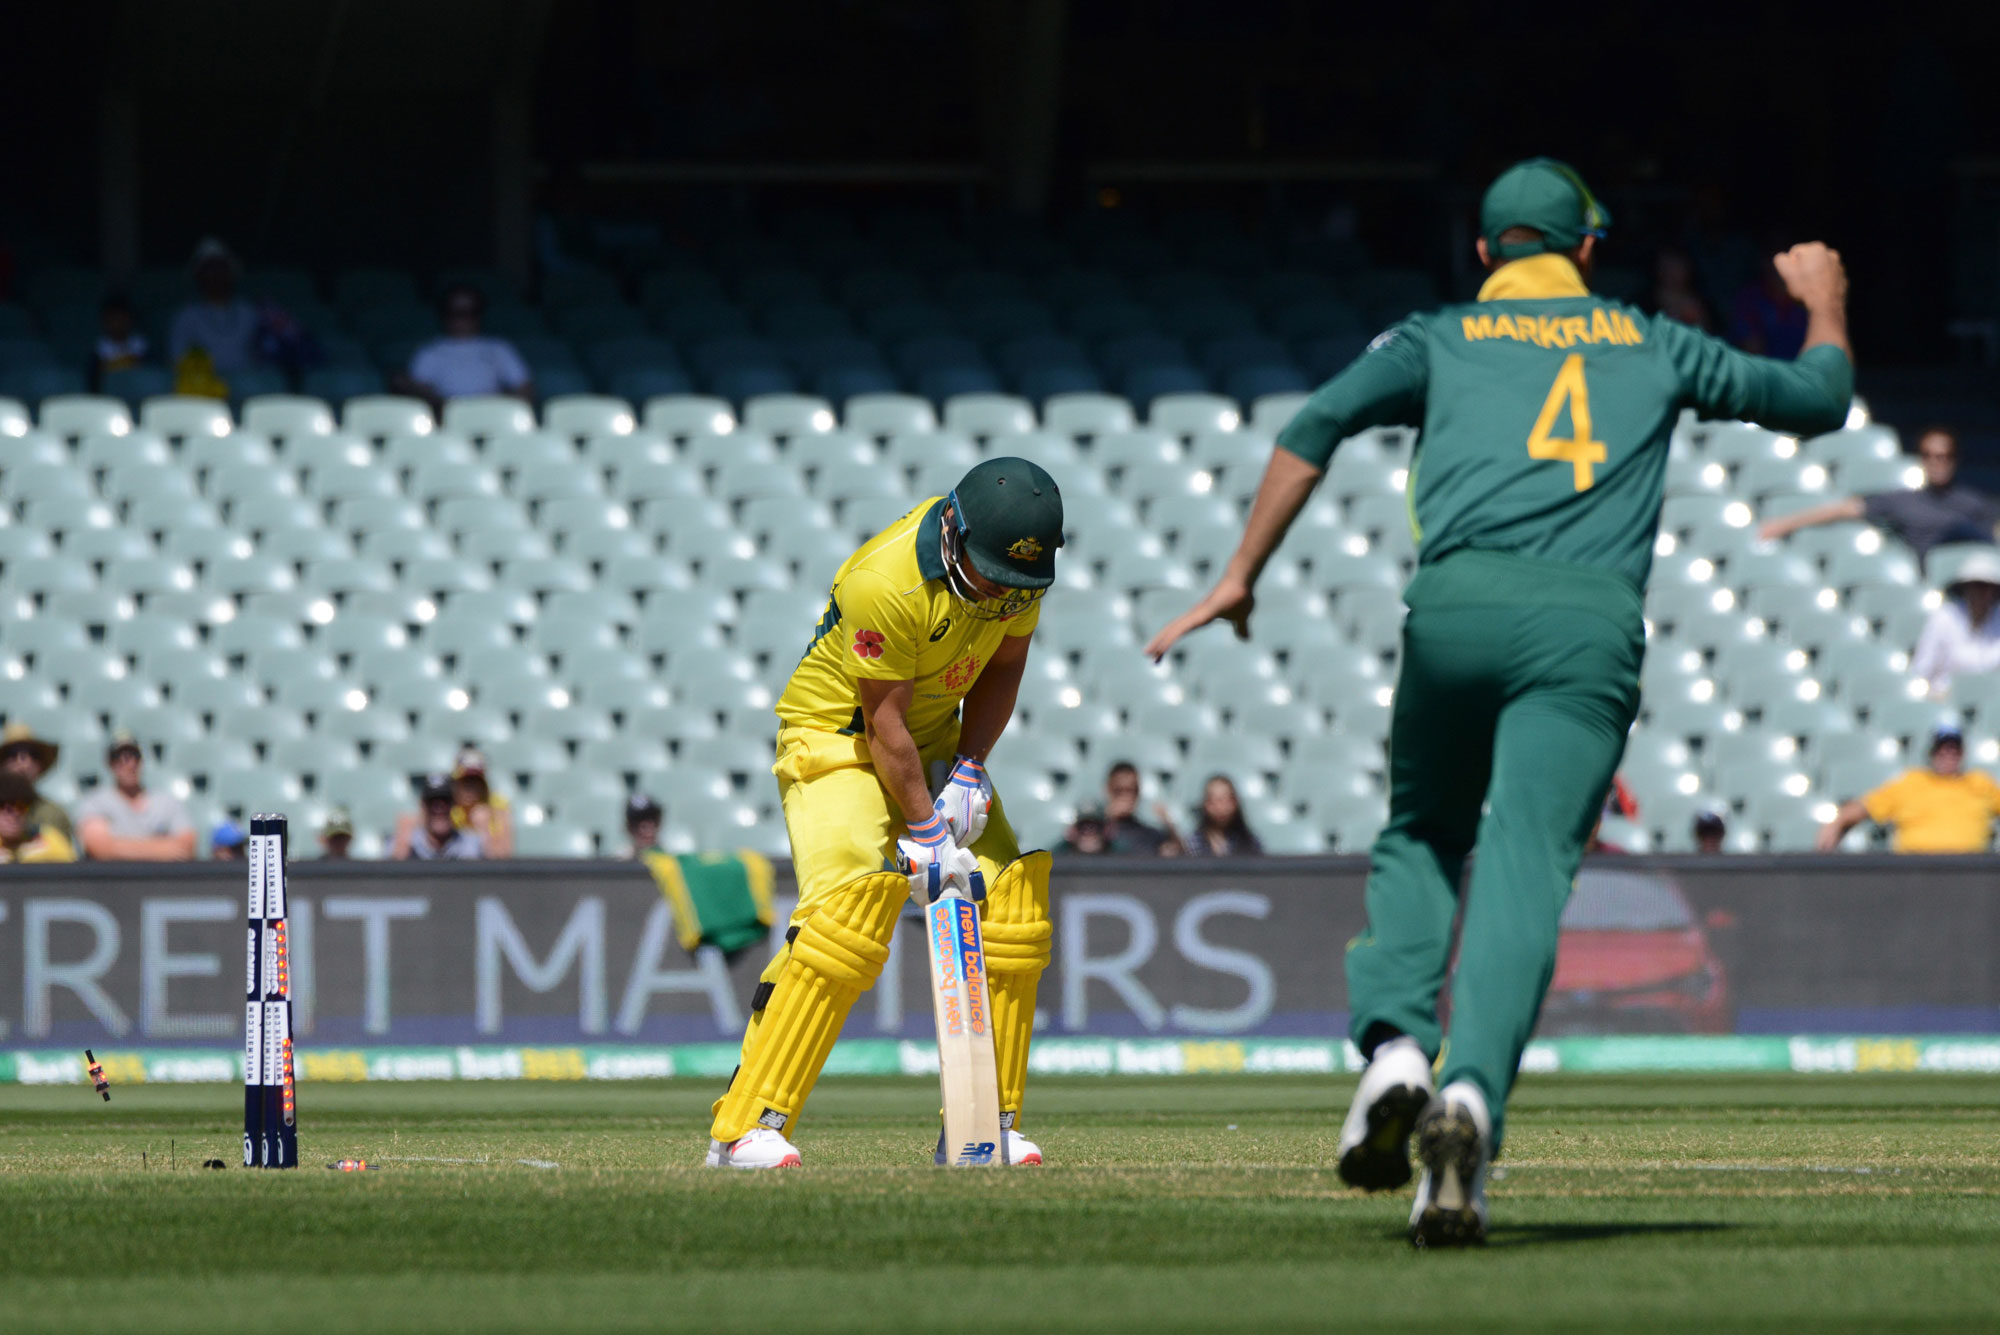 Australia's captain Aaron Finch (L) is out as South Africa's fieldsman Aiden Markram (R) celebrates during the second one day international cricket match between Australia and South Africa at the Adelaide Oval in Adelaide on November 9, 2018. (Photo by Br